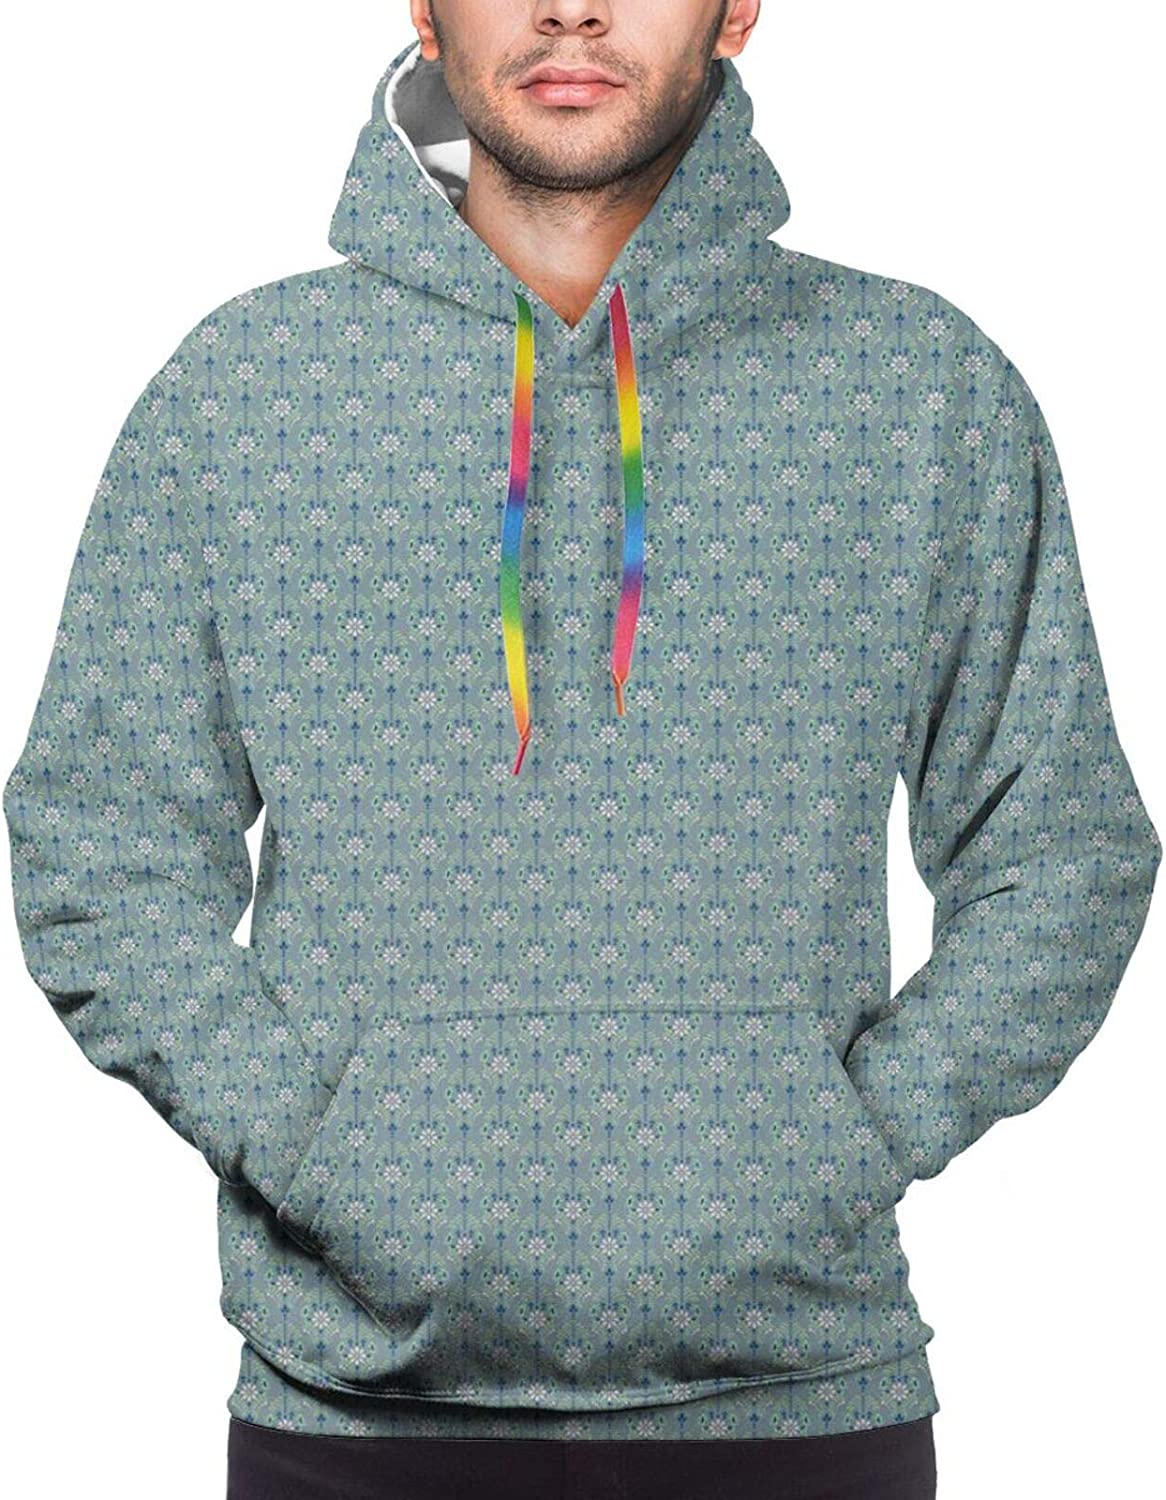 Men's Hoodies Sweatshirts,Damask Flourish Lively Blooms and Leaves with Little White Butterflies